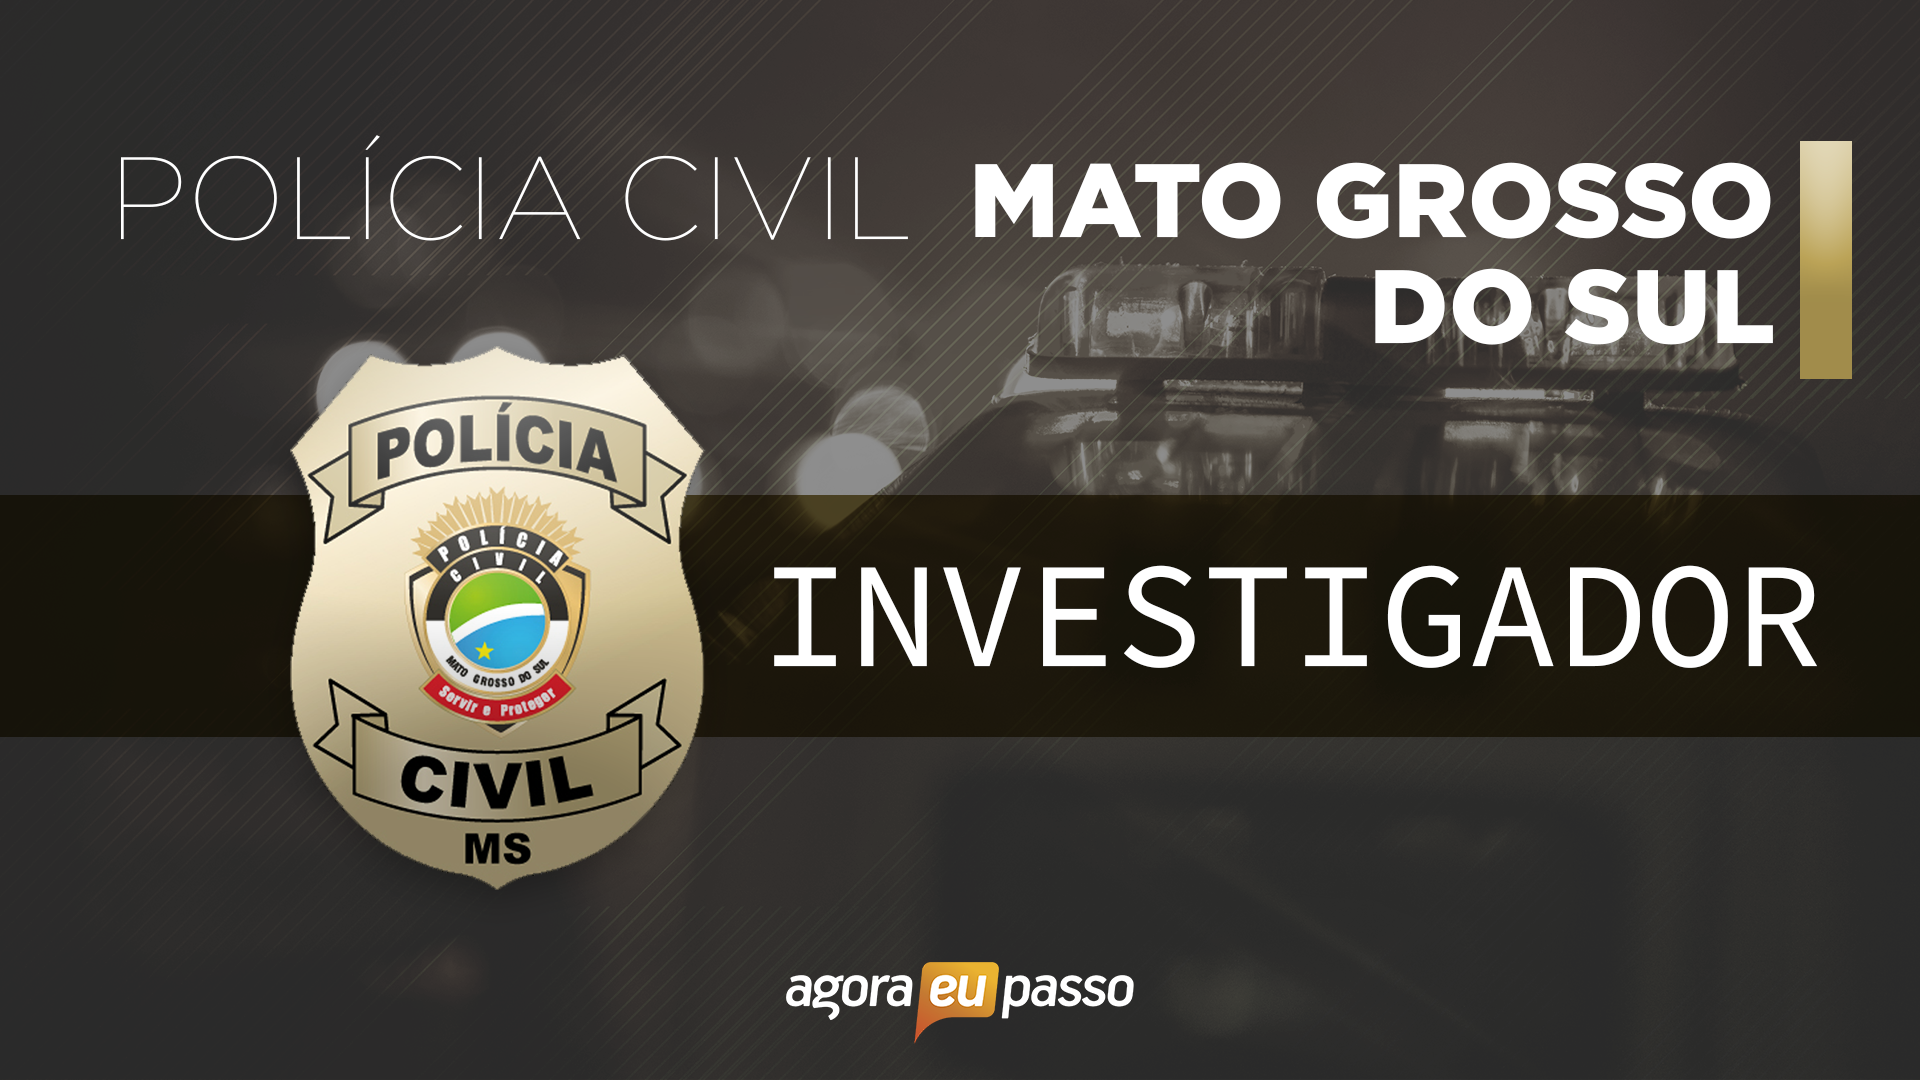 PC MS - Investigador da Polícia Civil do Estado de Mato Grosso doSul